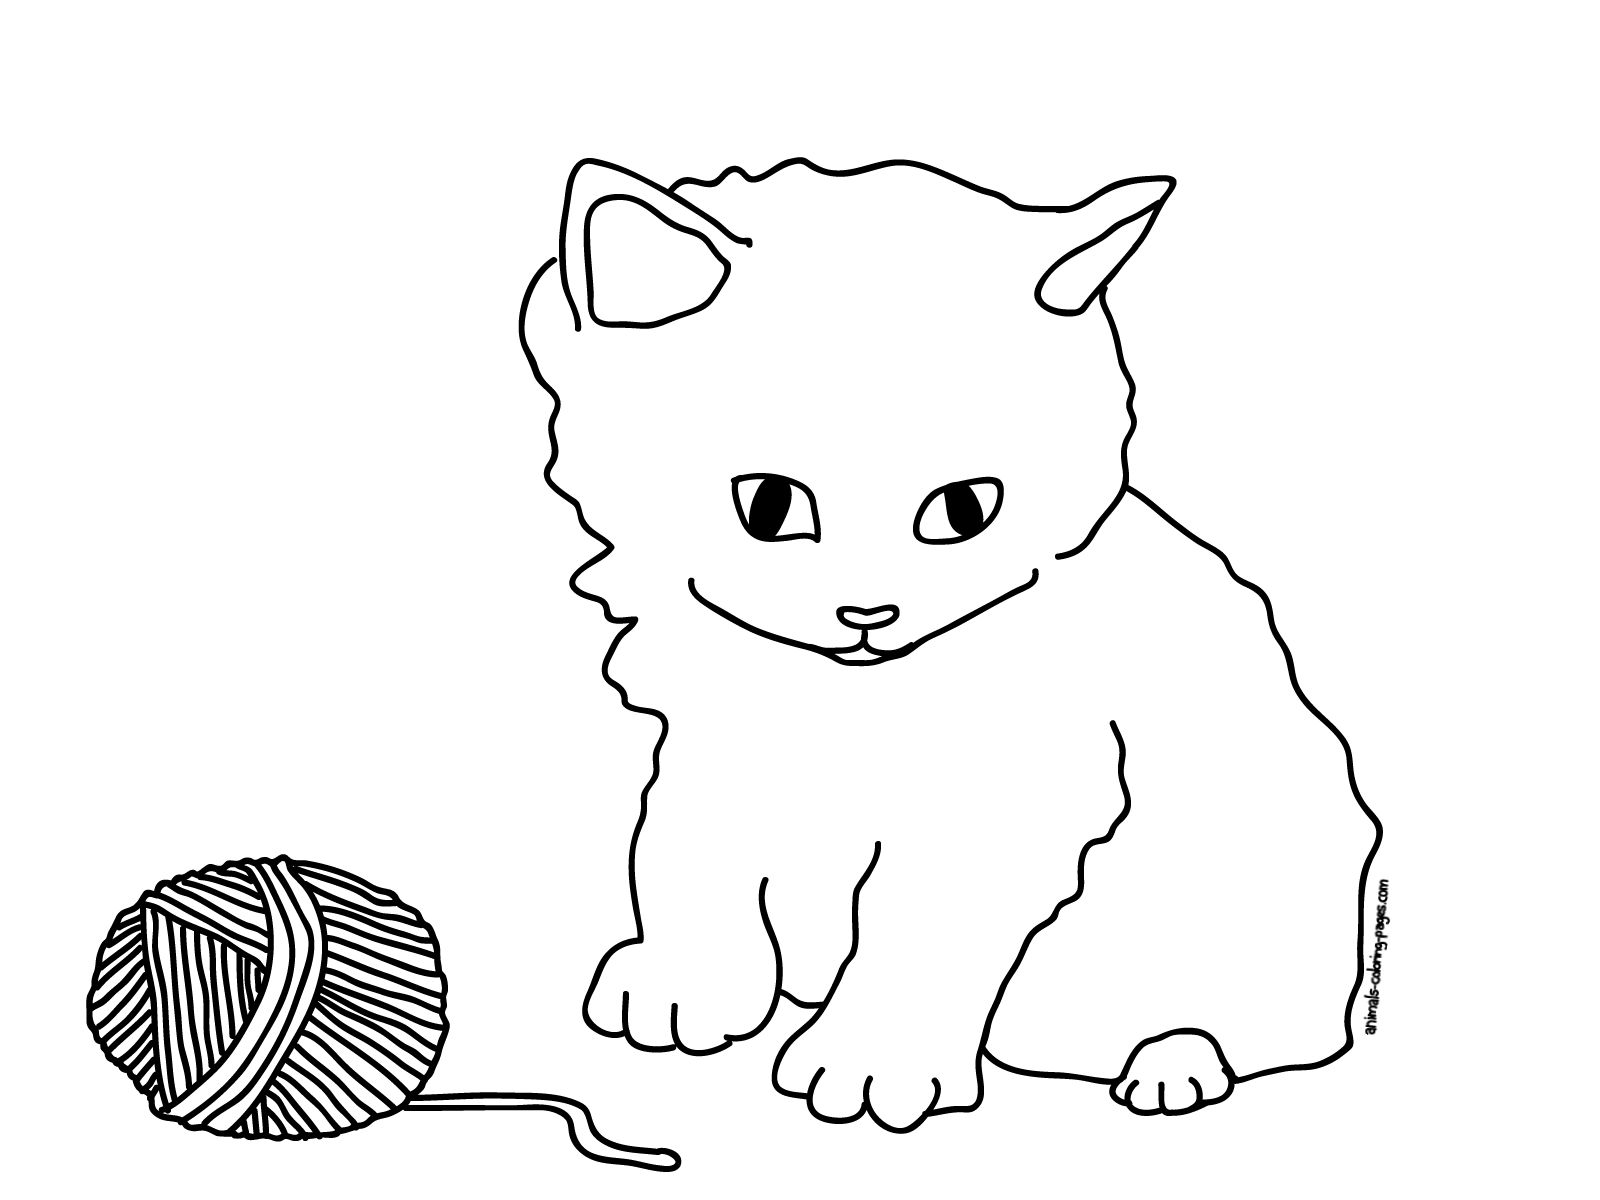 colouring pictures cats kittens cute kitten coloring pages part 2 pictures colouring cats kittens